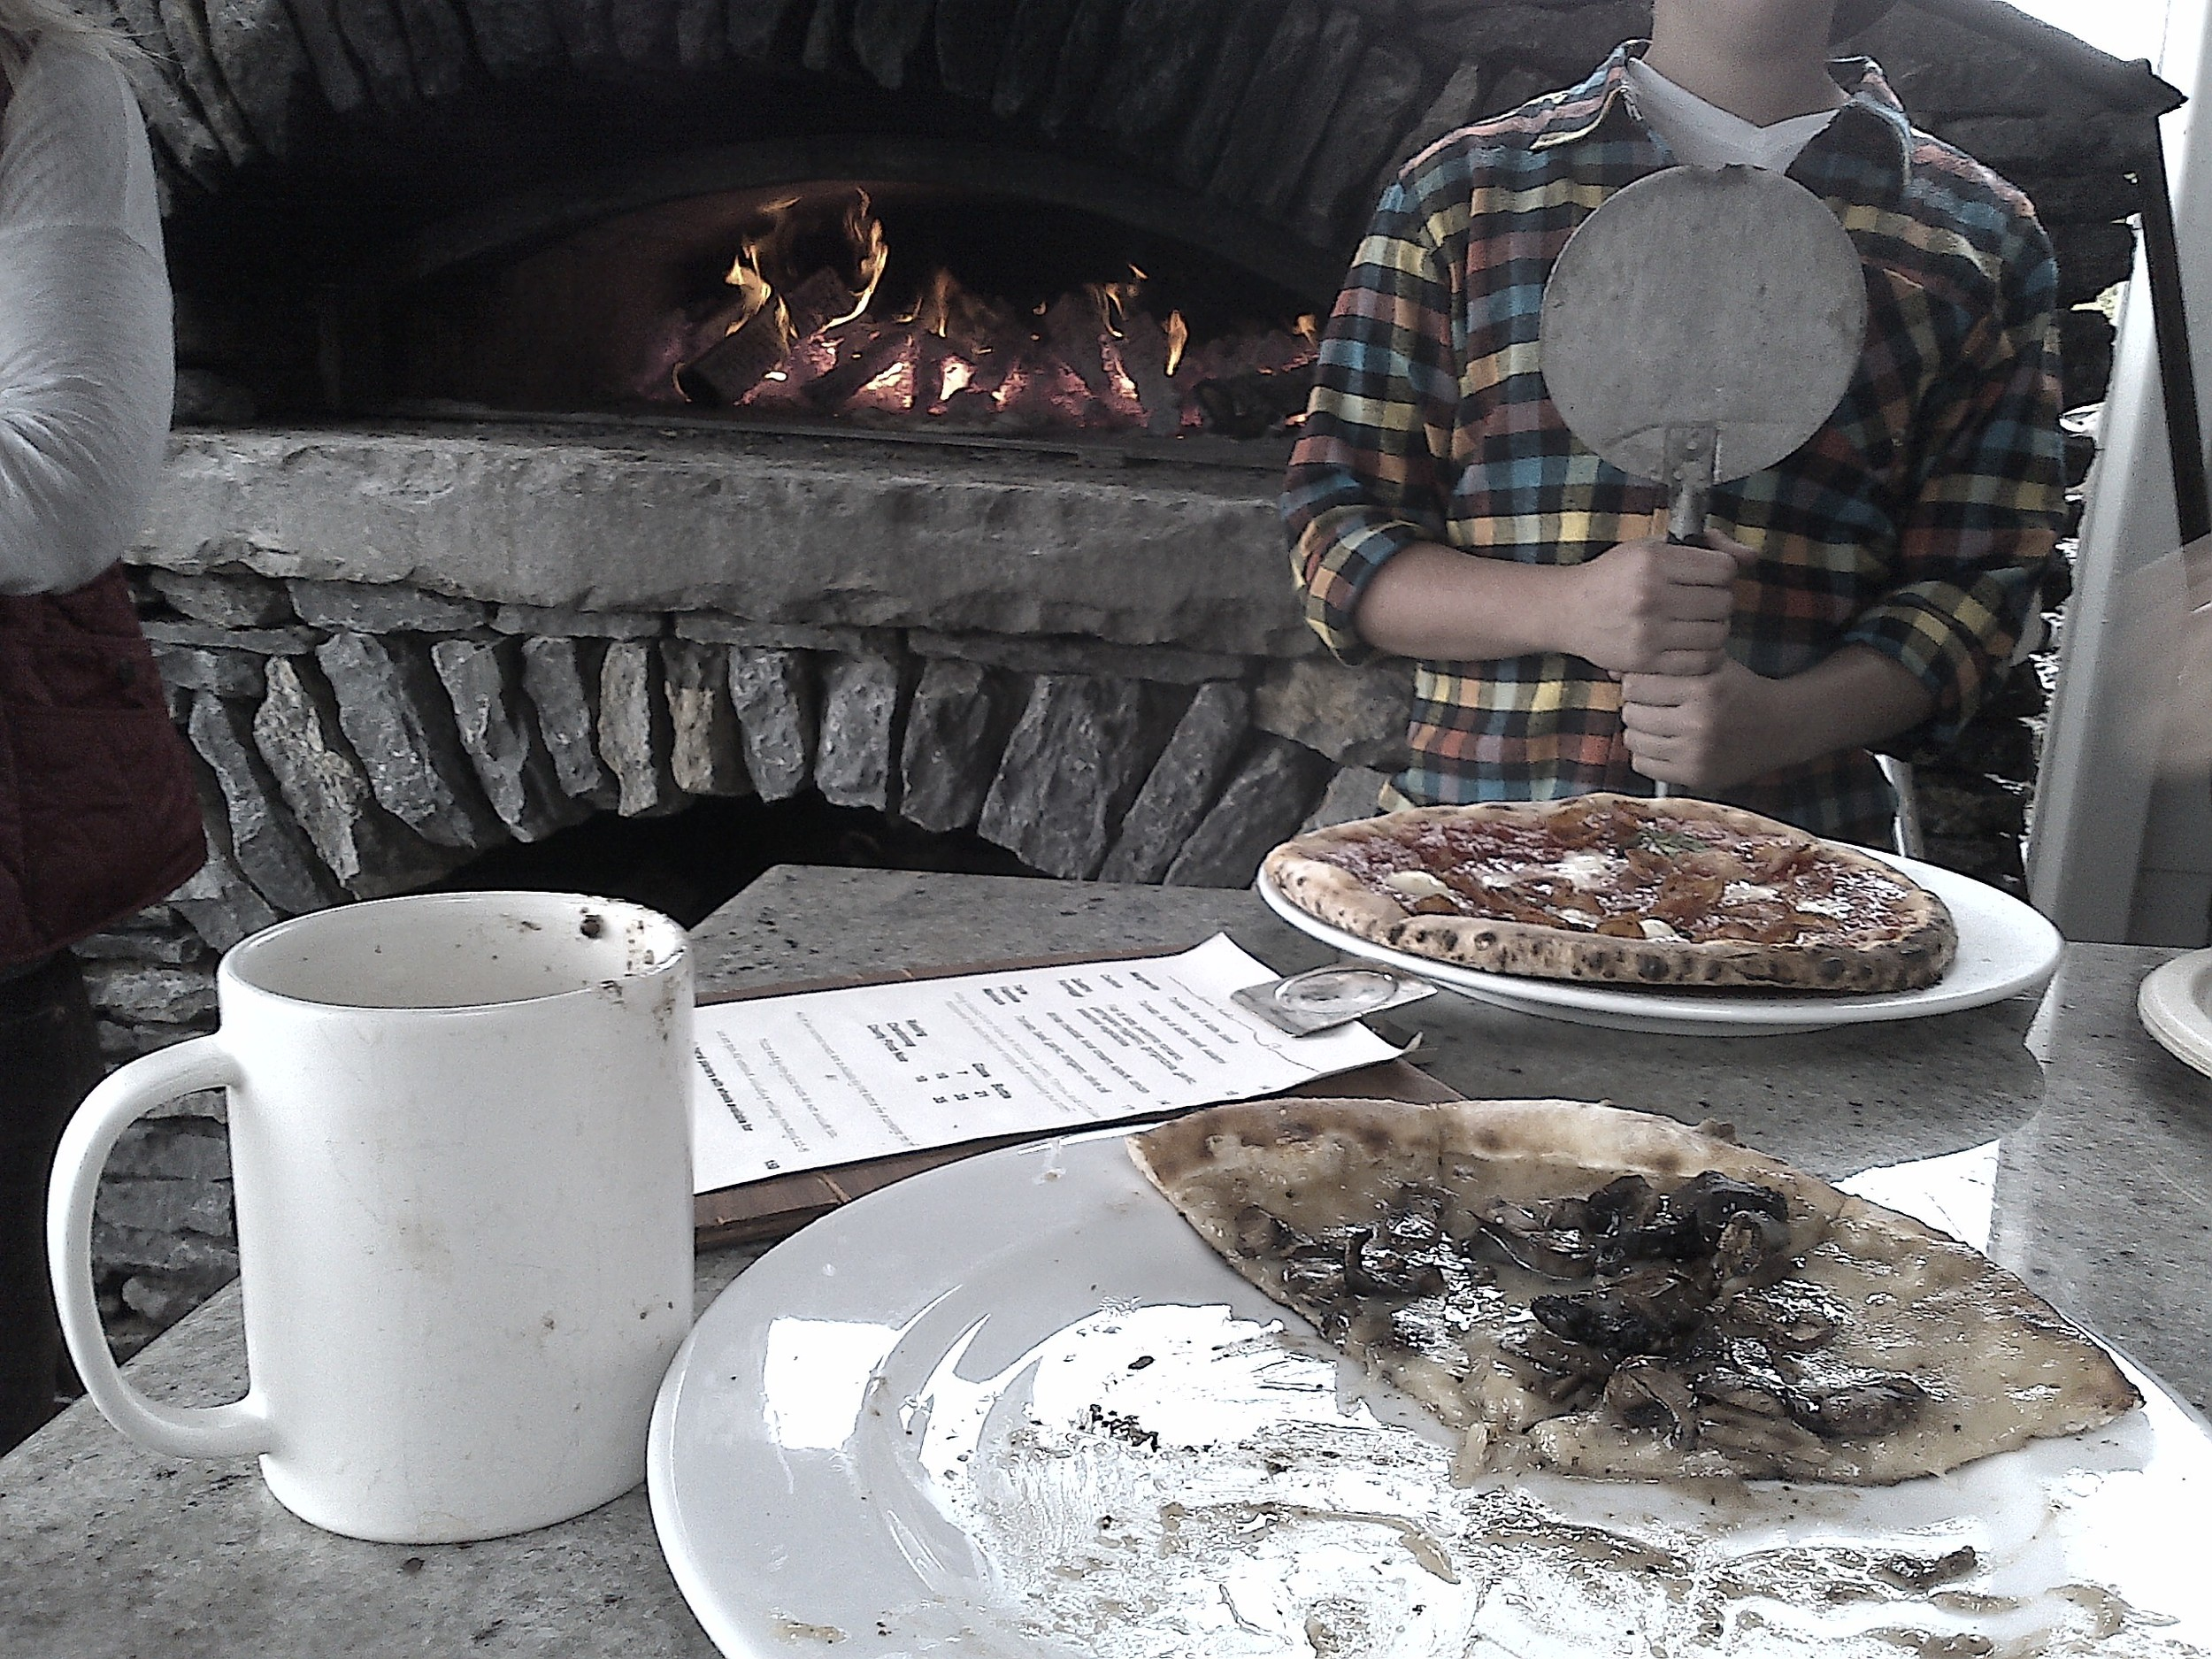 Coffee and pizza from the woodfire pizza oven.